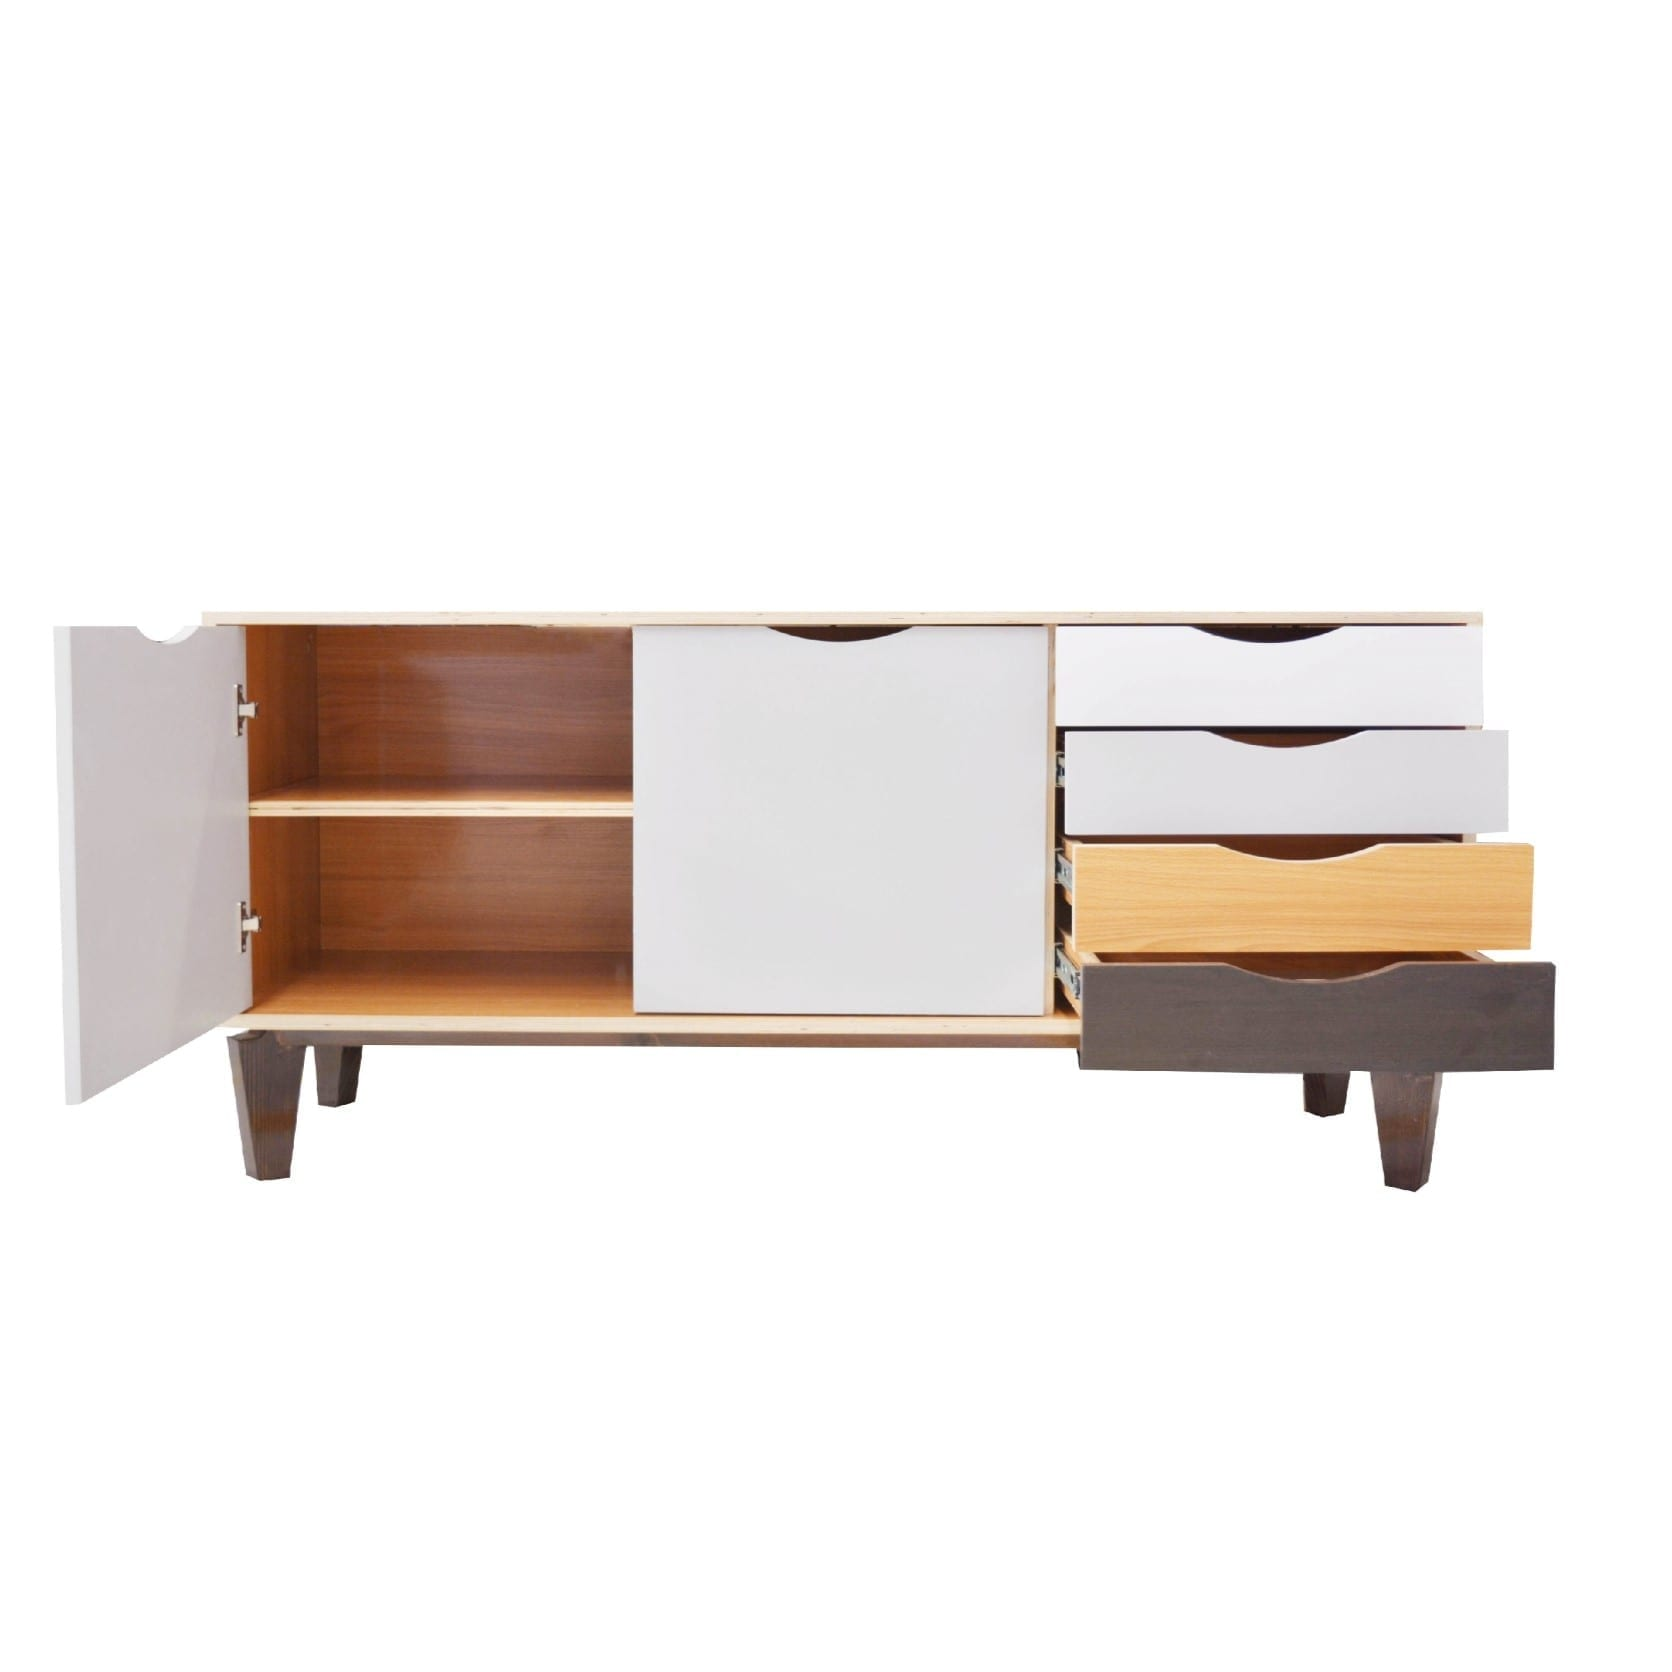 Office Credenza Made From HDF Laminate With Total Wooden Legs. Includes 2  Doors, 1 Shelf And 4 Drawer. Elegant And Multi Colored Design To Match With  Any ...